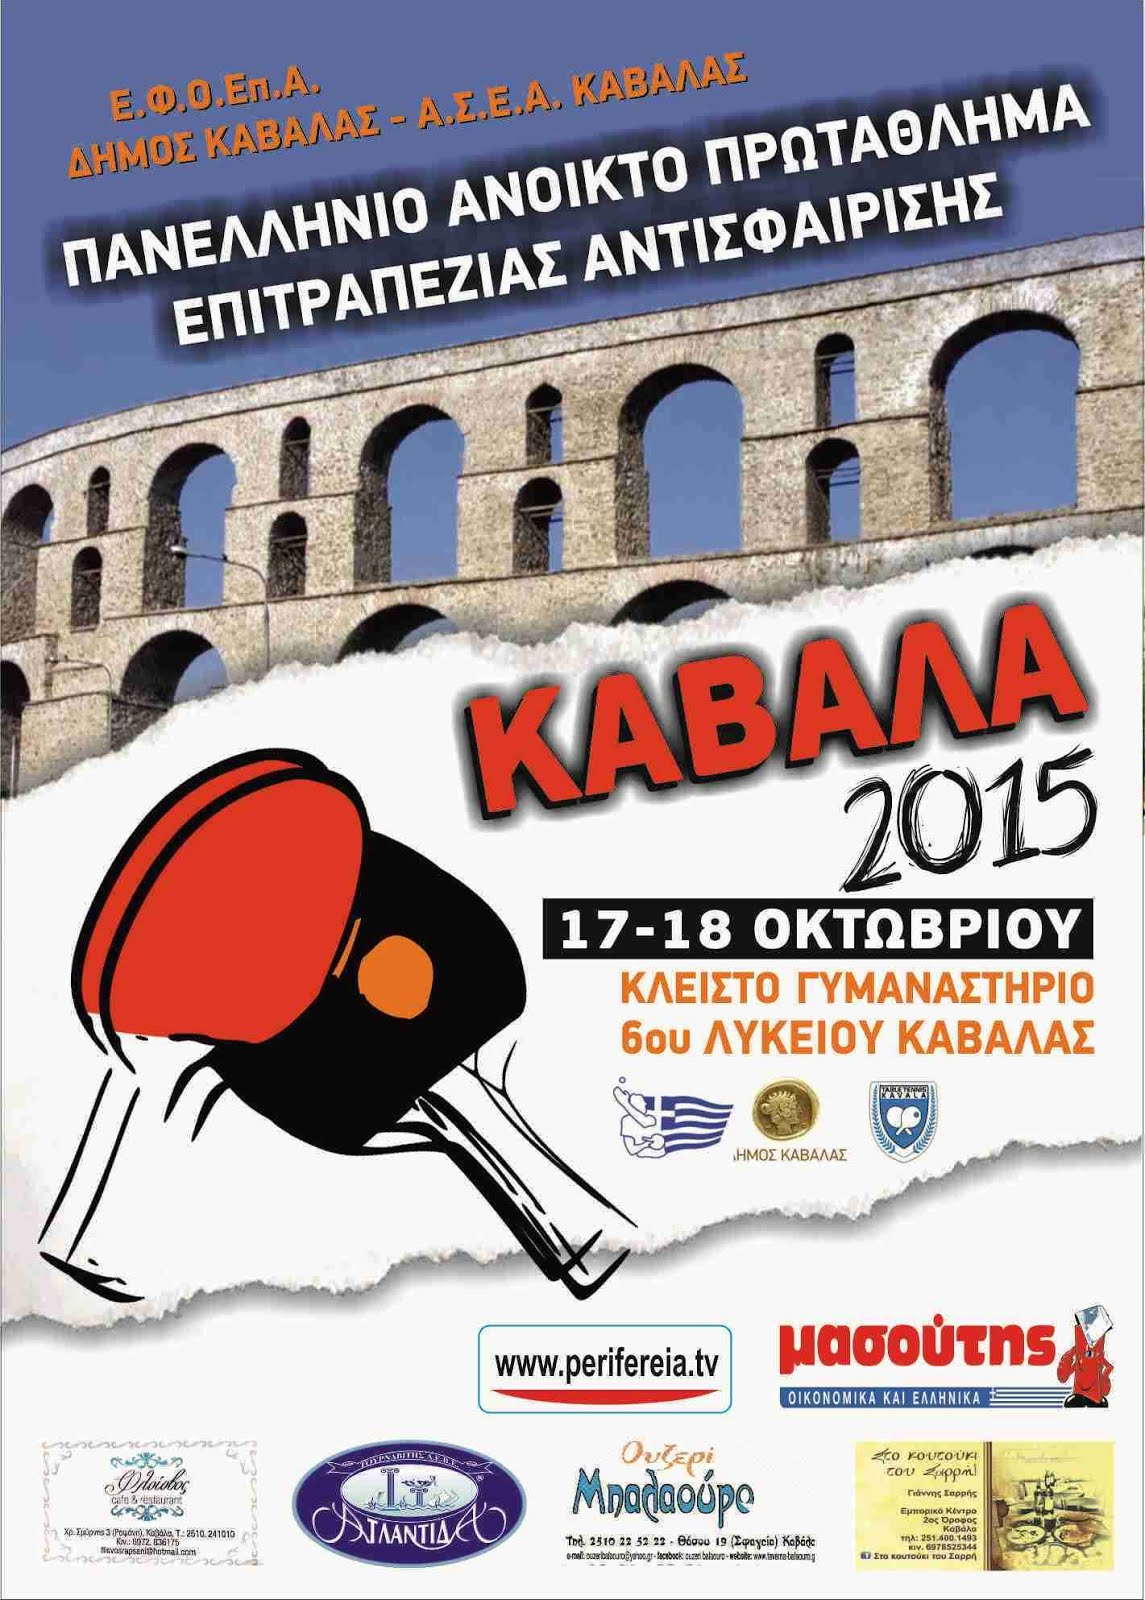 KAVALA TABLE TENNIS OPEN 2015